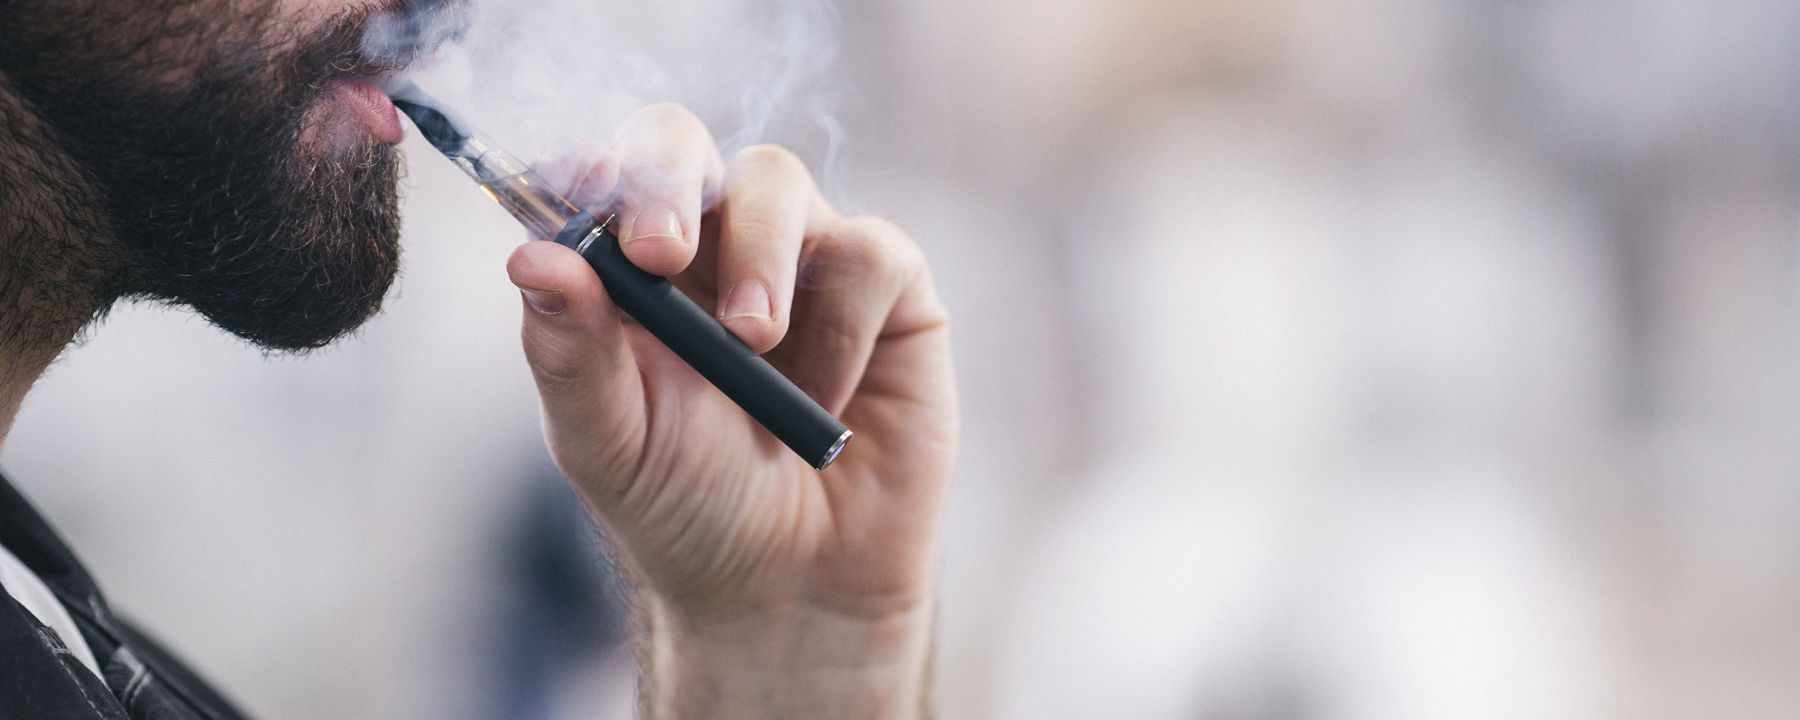 Scientists Study Vaping's Harm as Second Death Reported